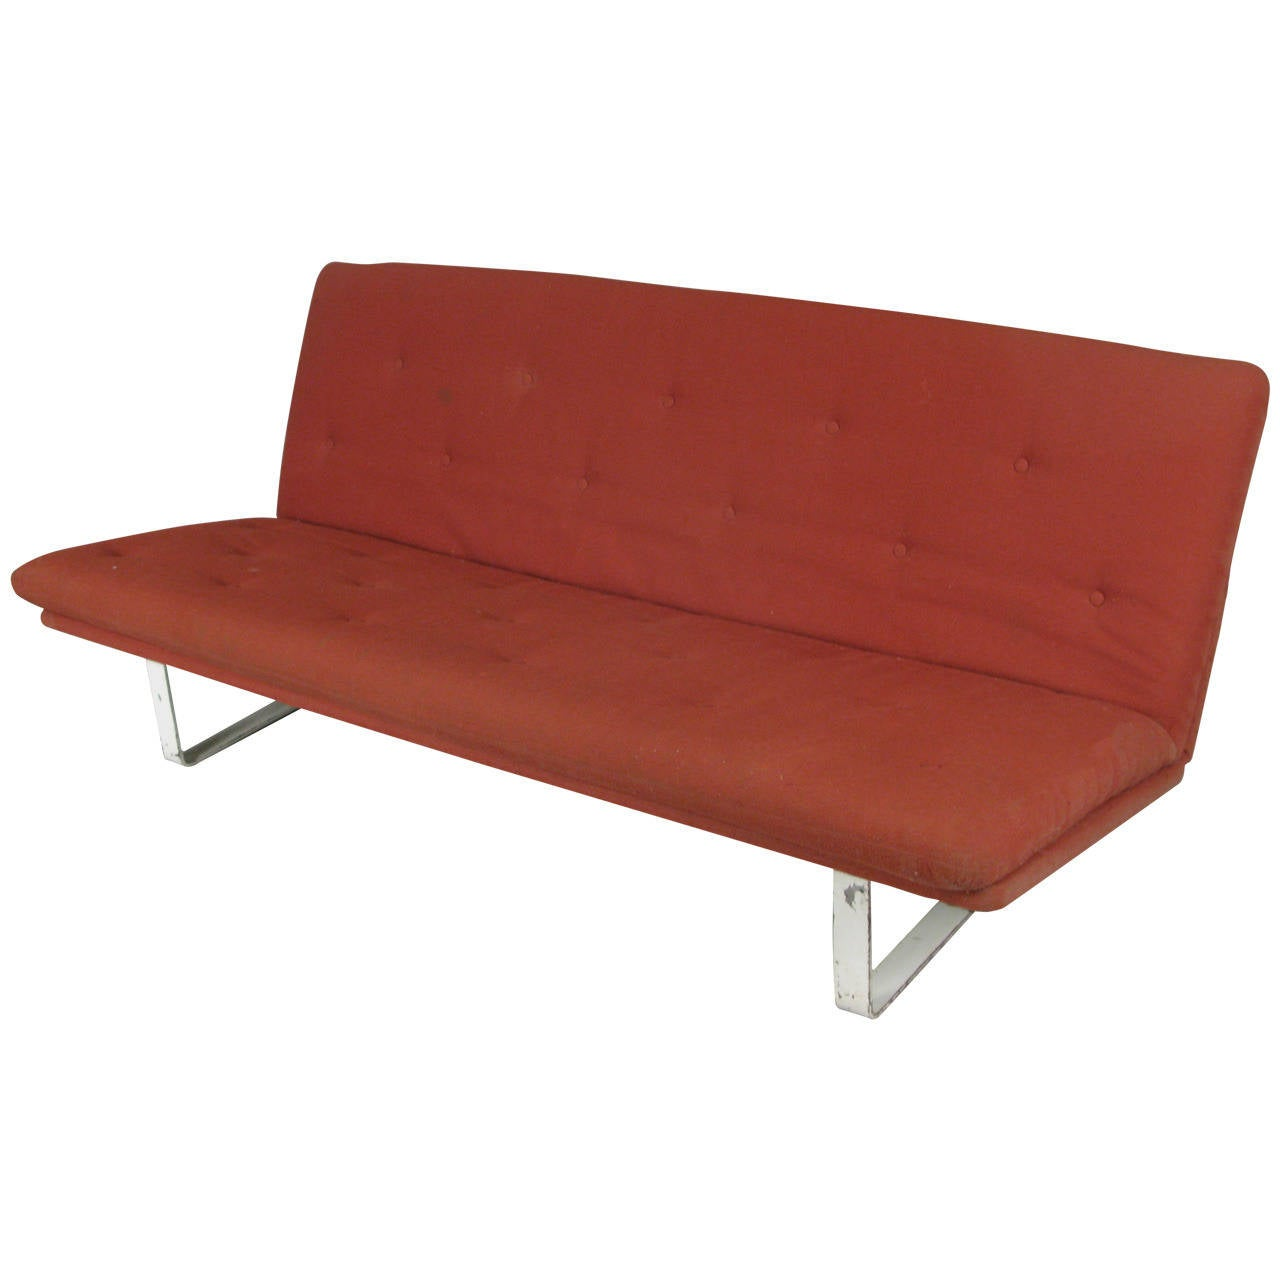 Vintage 1960s Sofa by Kho Liang le for Artifort